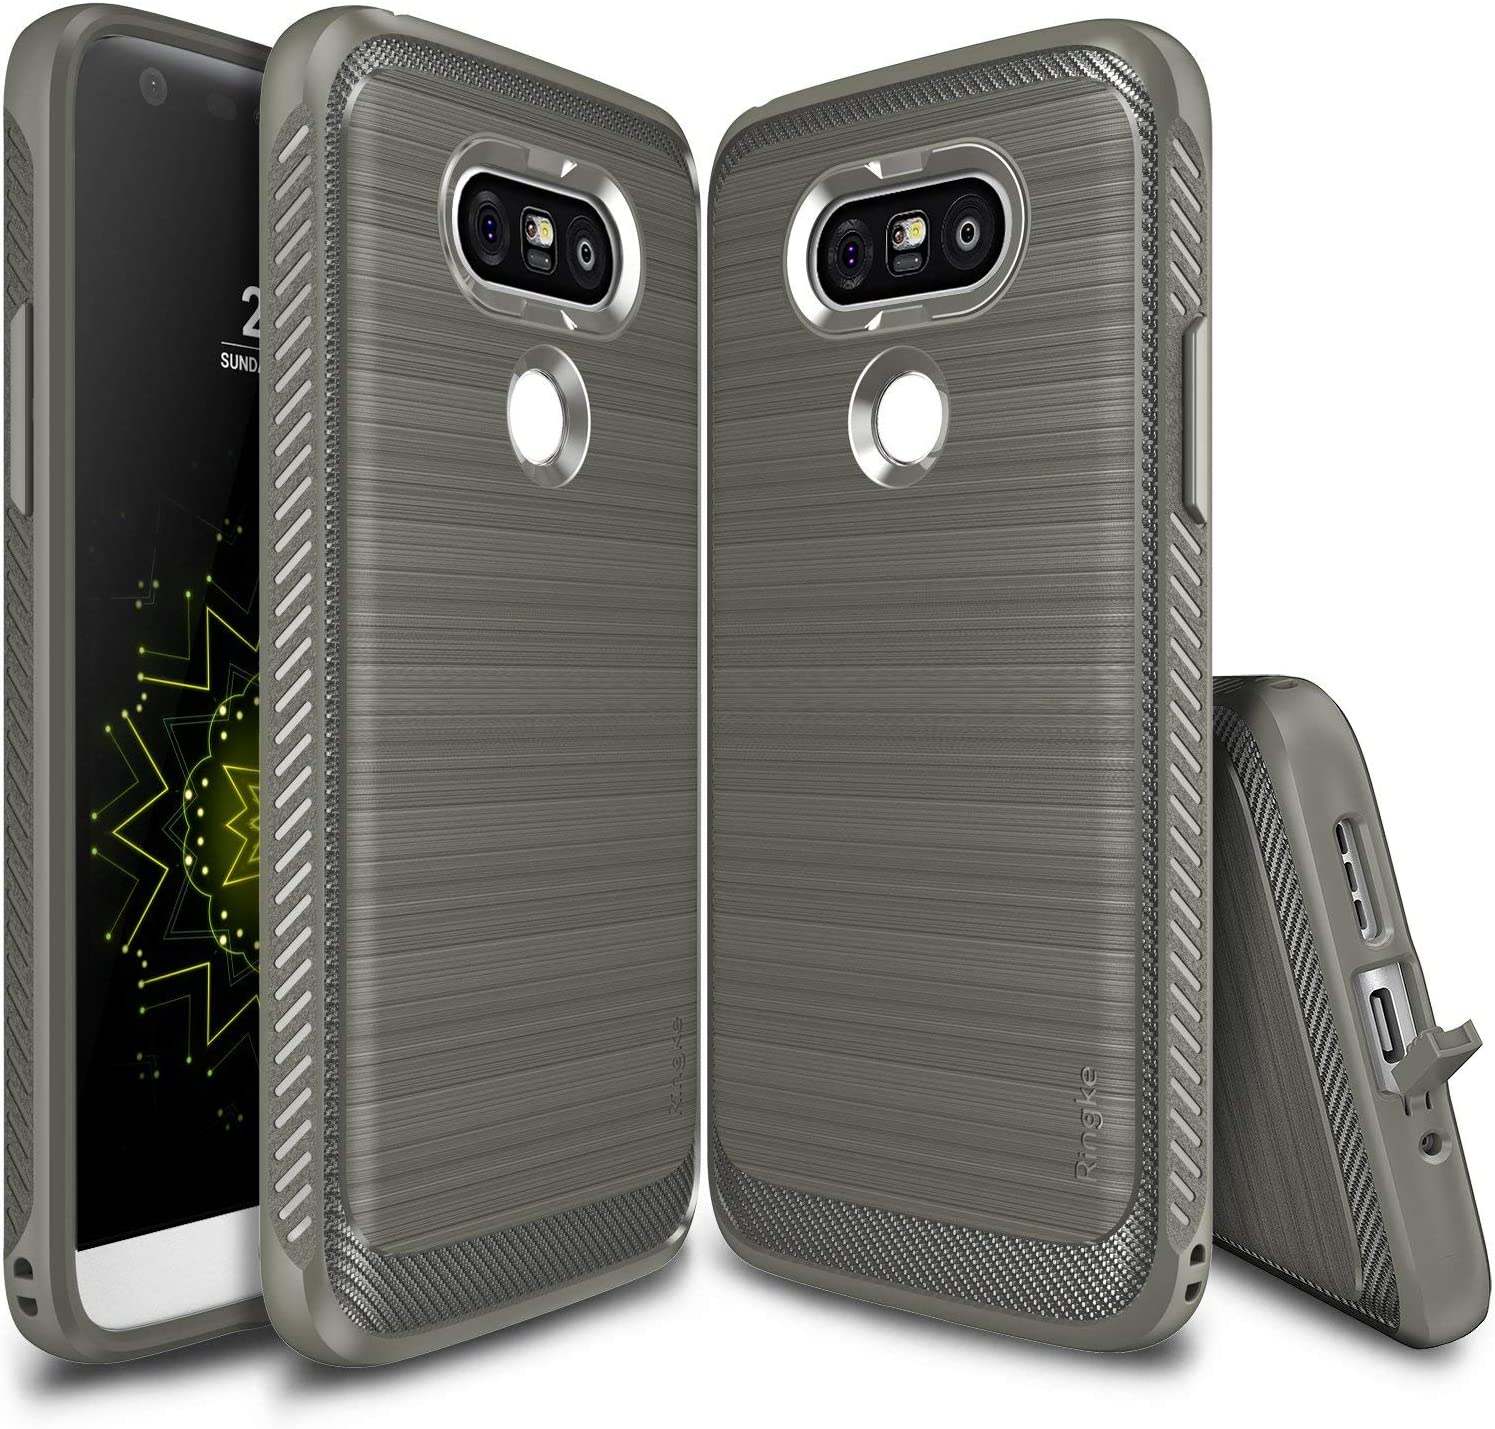 Ringke Onyx Compatible with LG G5 Case Resilient Strength Flexible Durability, Durable Anti-Slip, TPU Defensive Case for LG G5 2016 - Gray